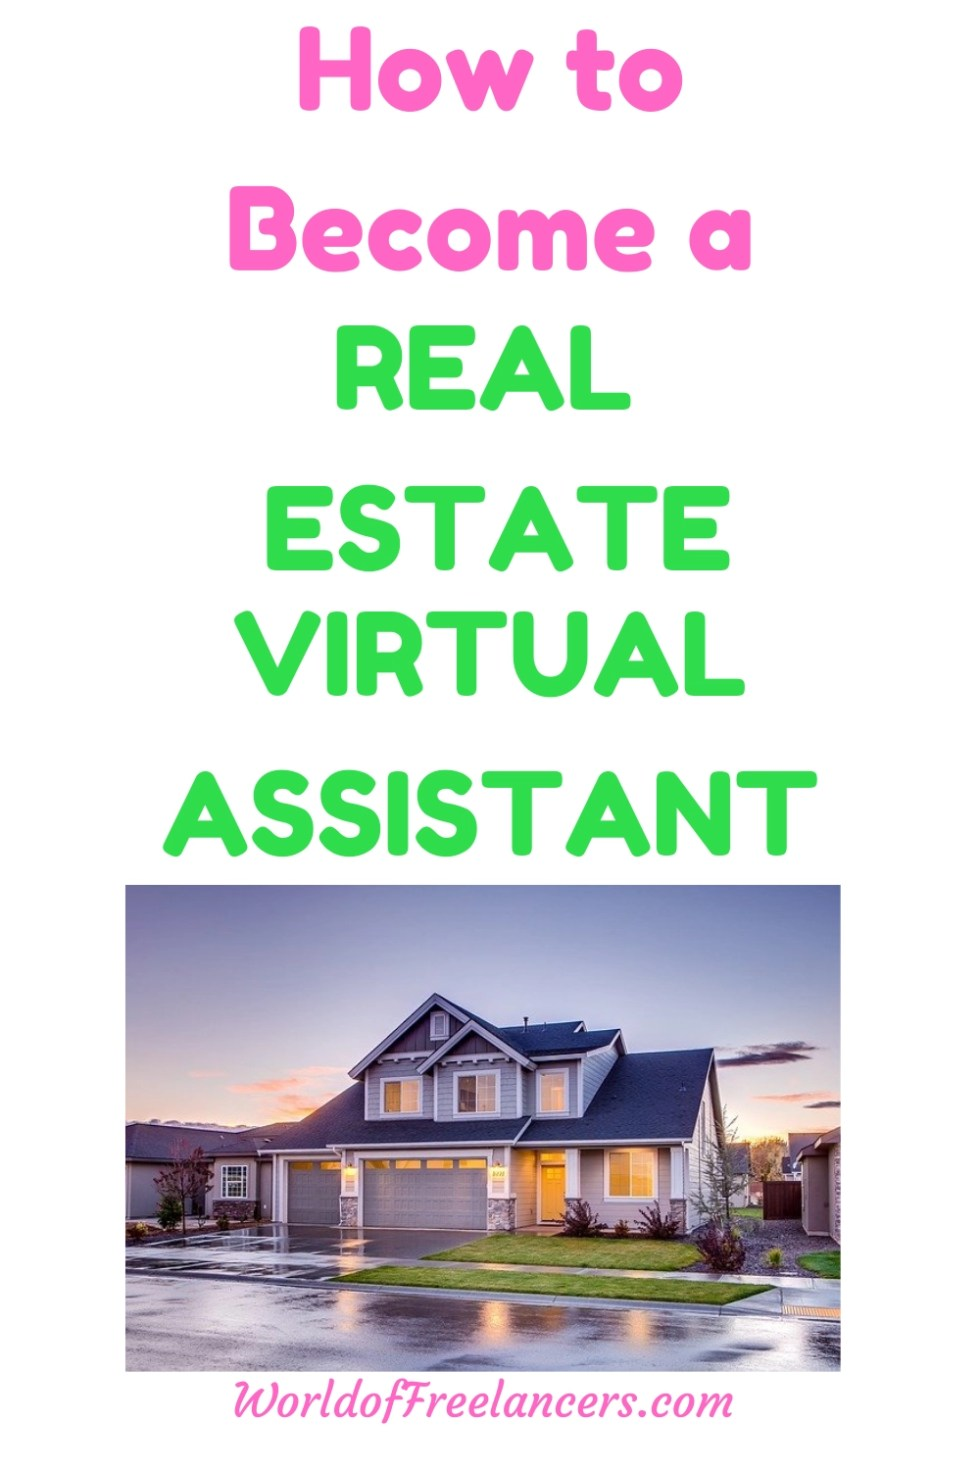 PInterest image of light blue house with text How to become a Real Estate virtual assistant